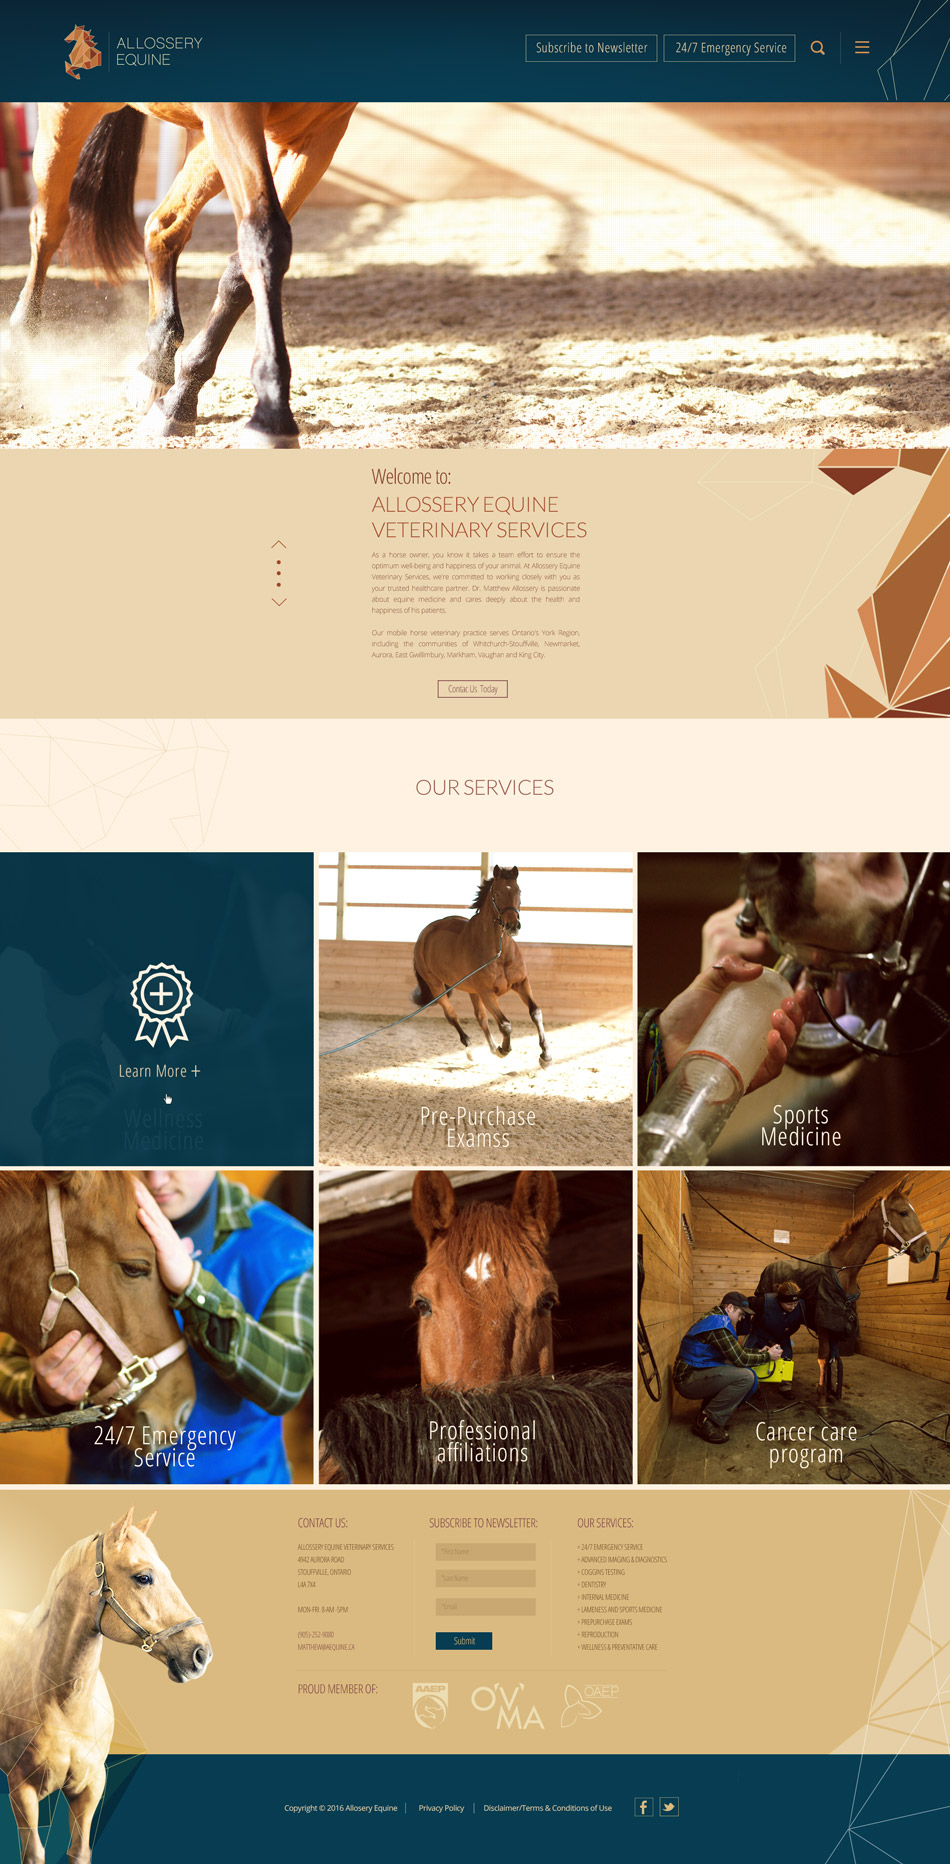 AEQUINE_HomePage_Website